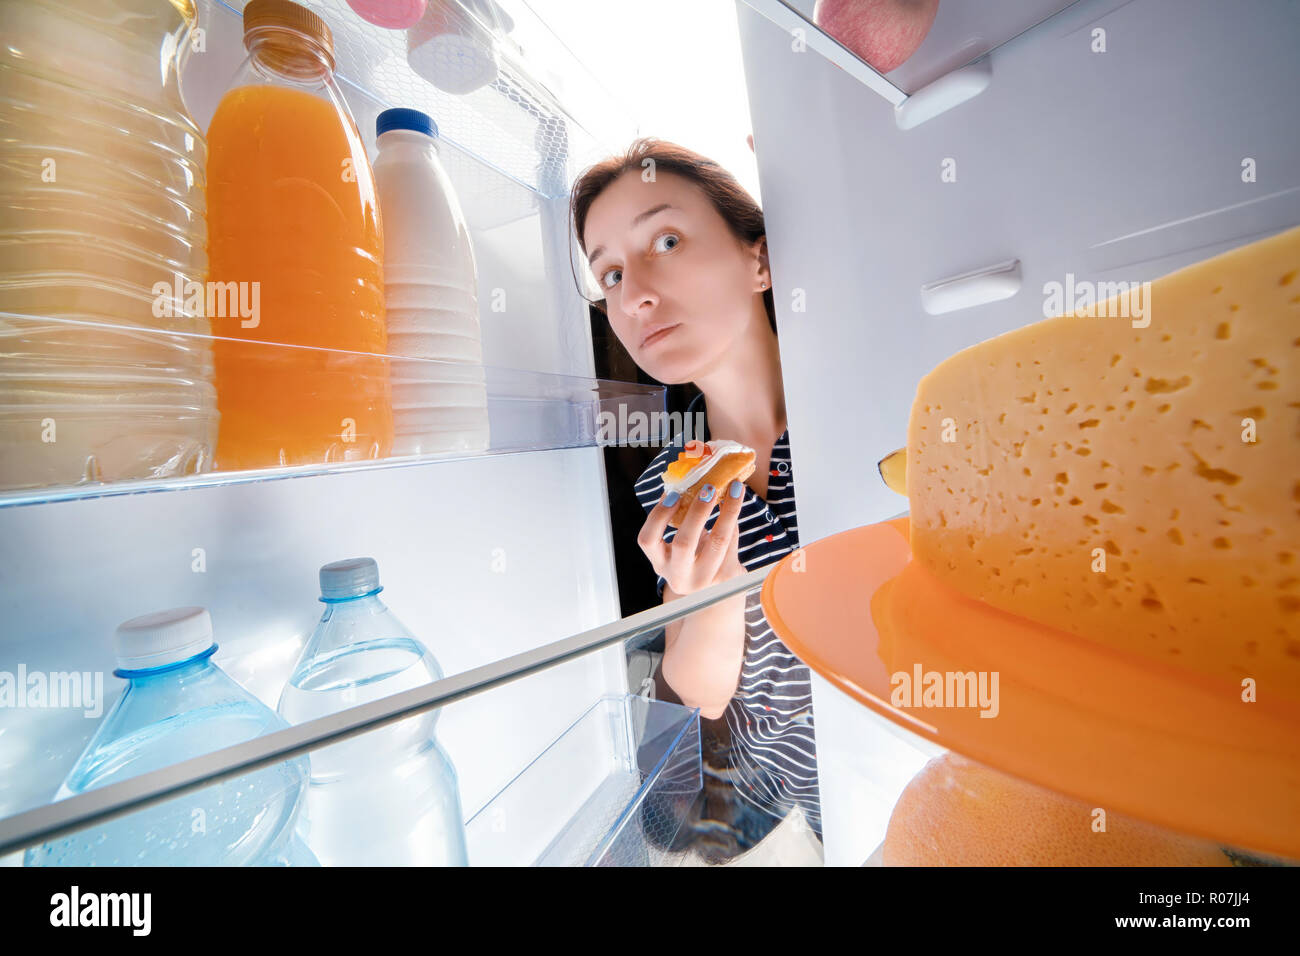 Tricky girl holding sweet cake and looking into fridge full of different food. Wide angle view from inside - Stock Image